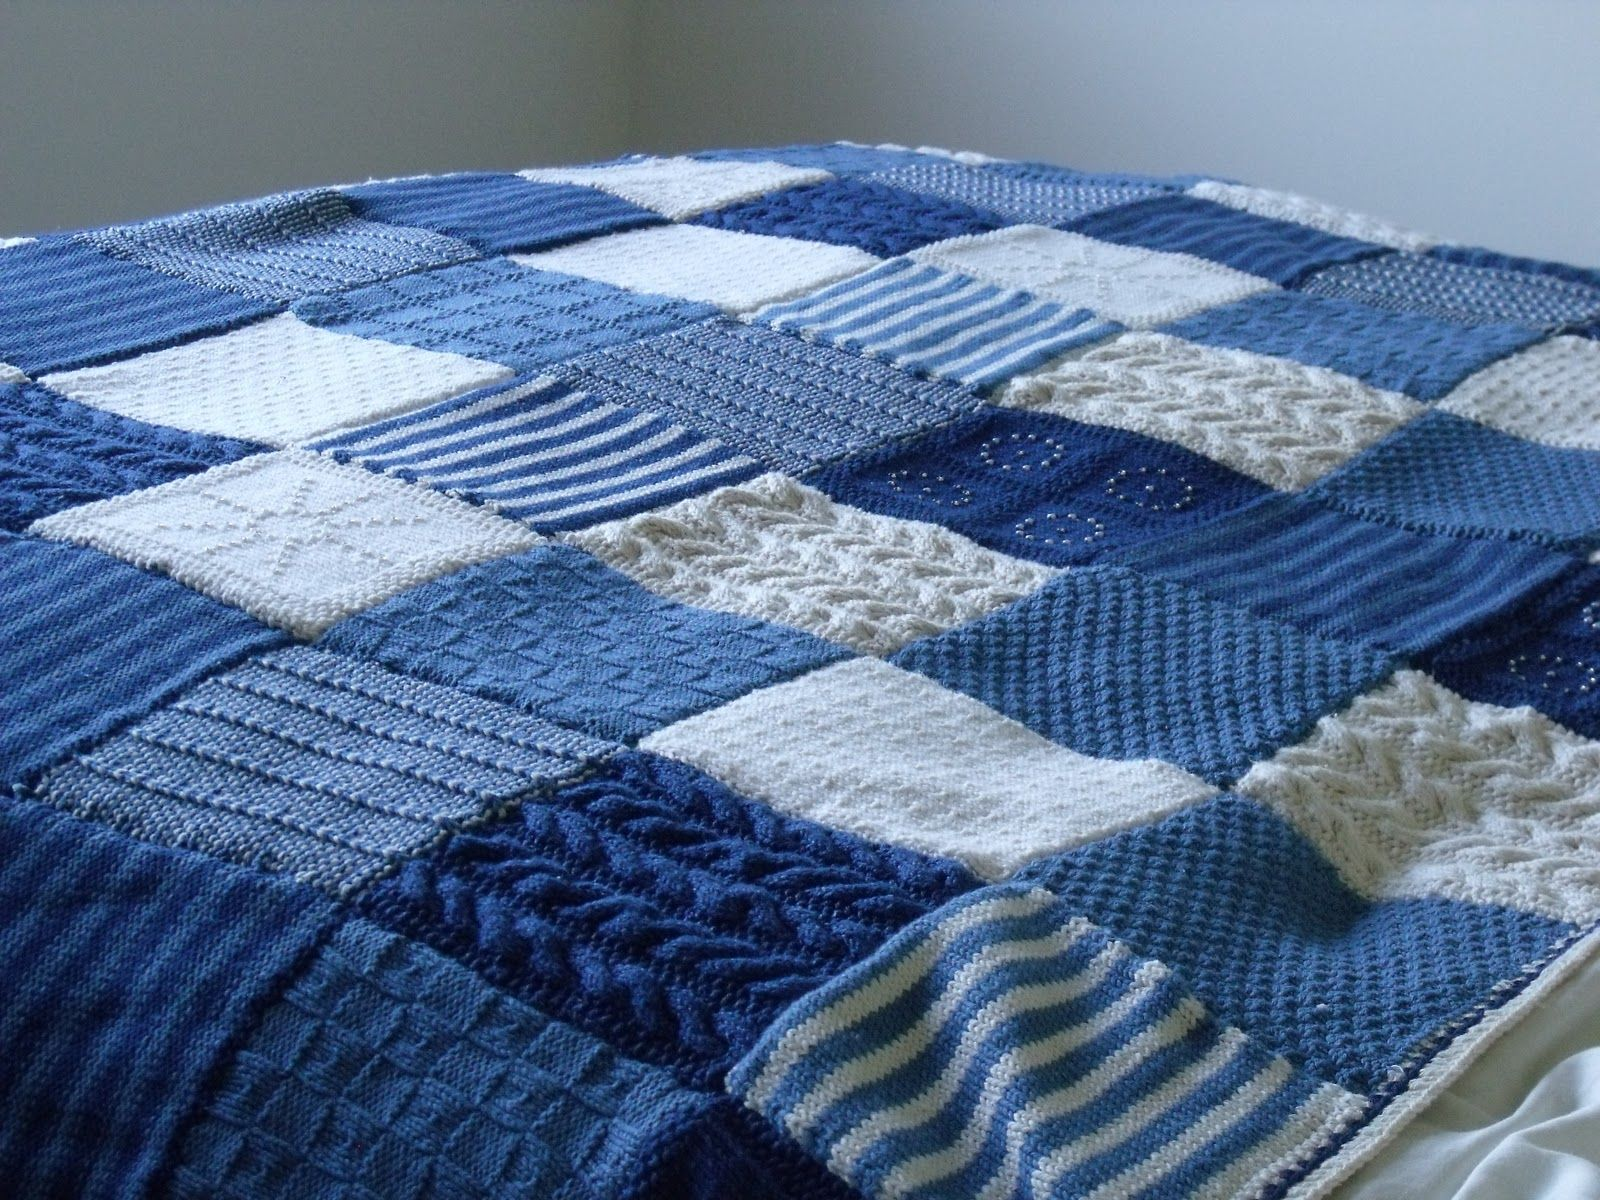 Crochet Bedspread Blues Amp Whites Knitting Knitted